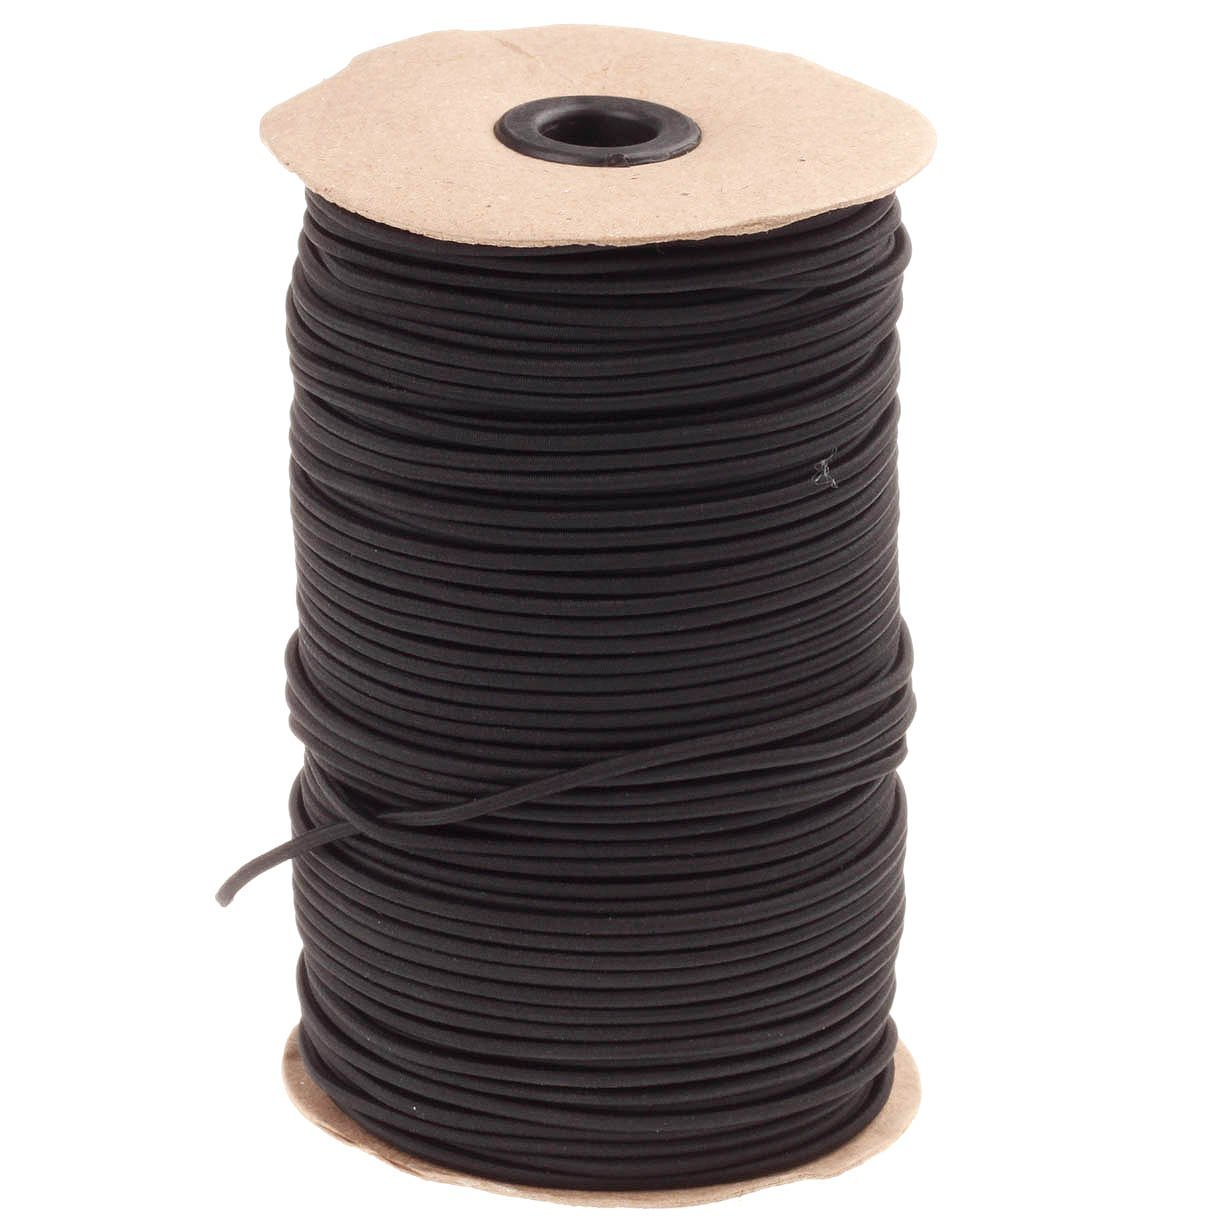 COTOWIN 144 Yards 1/8-Inch (3 mm) Black Heavy Round Cord Elastic Spool by COTOWIN